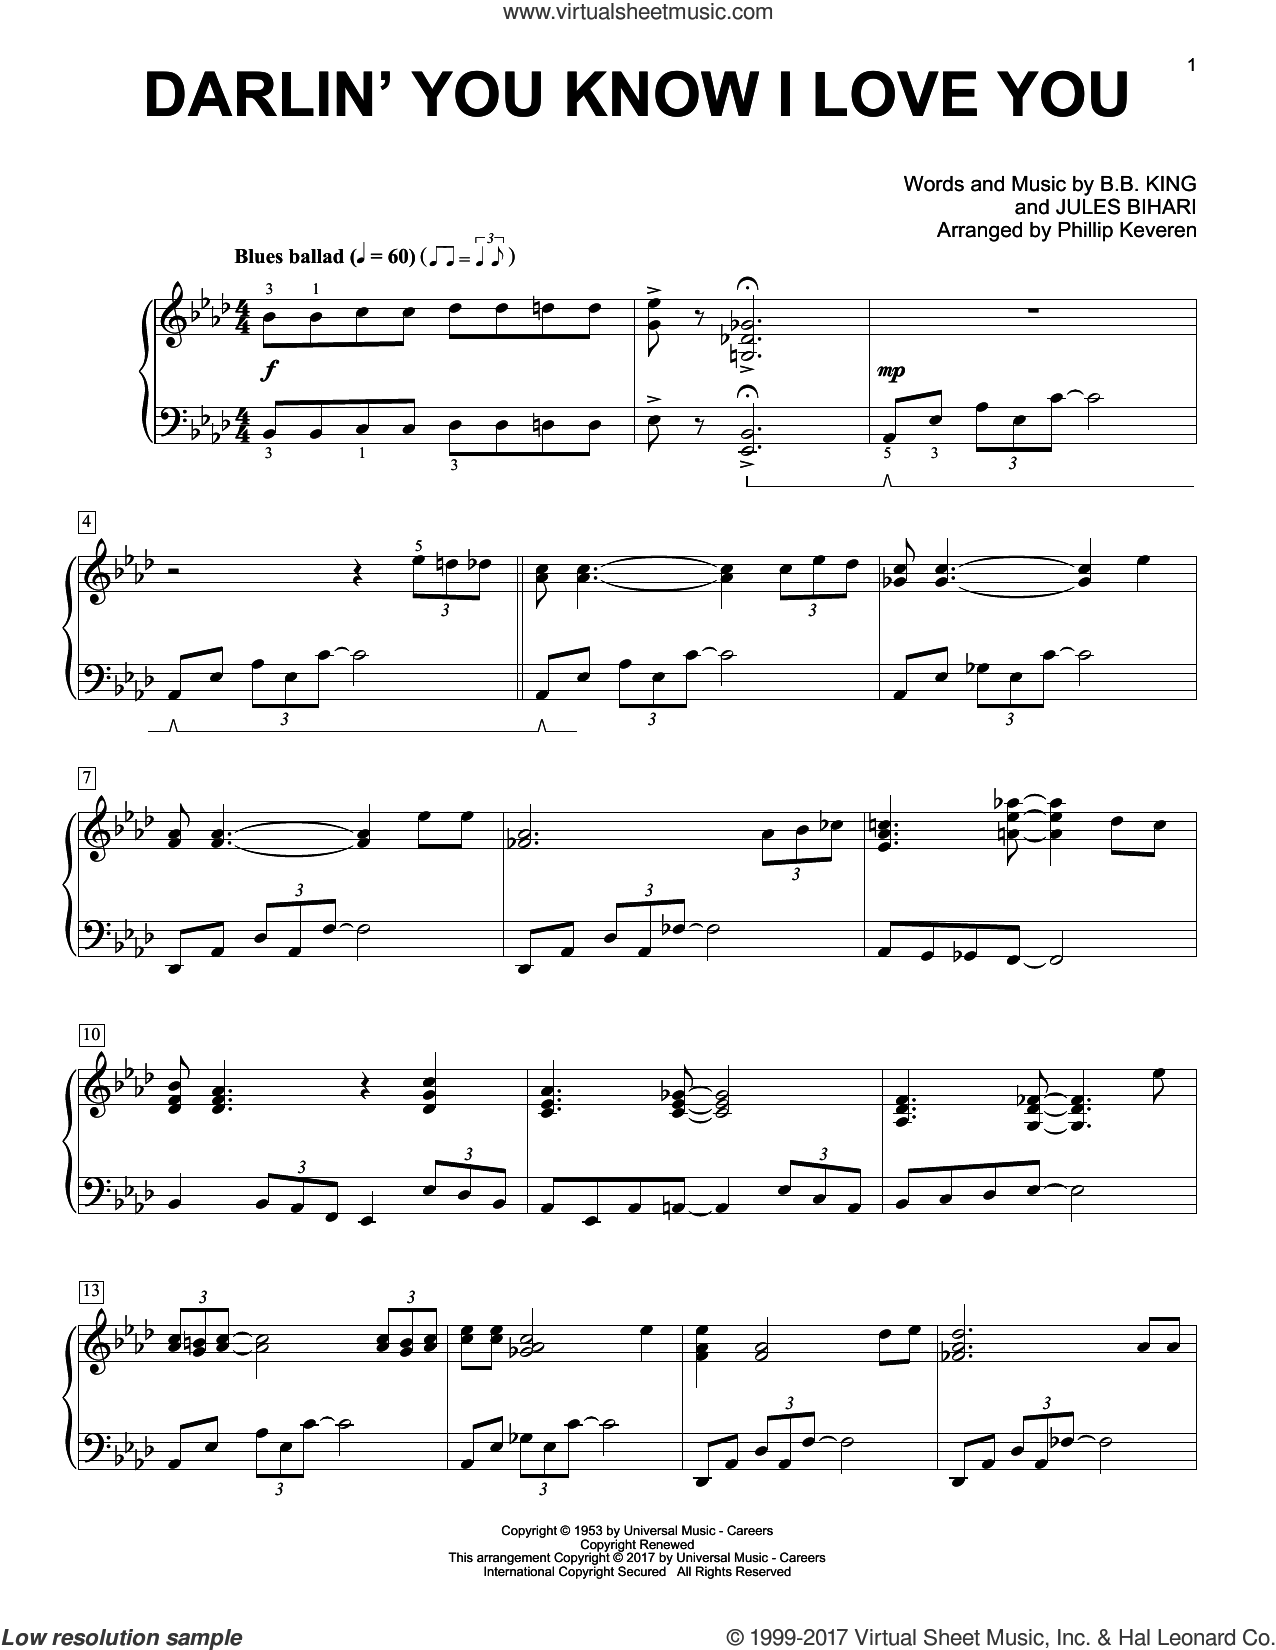 Darlin' You Know I Love You sheet music for piano solo by B.B. King, Phillip Keveren and Jules Bihari, intermediate skill level